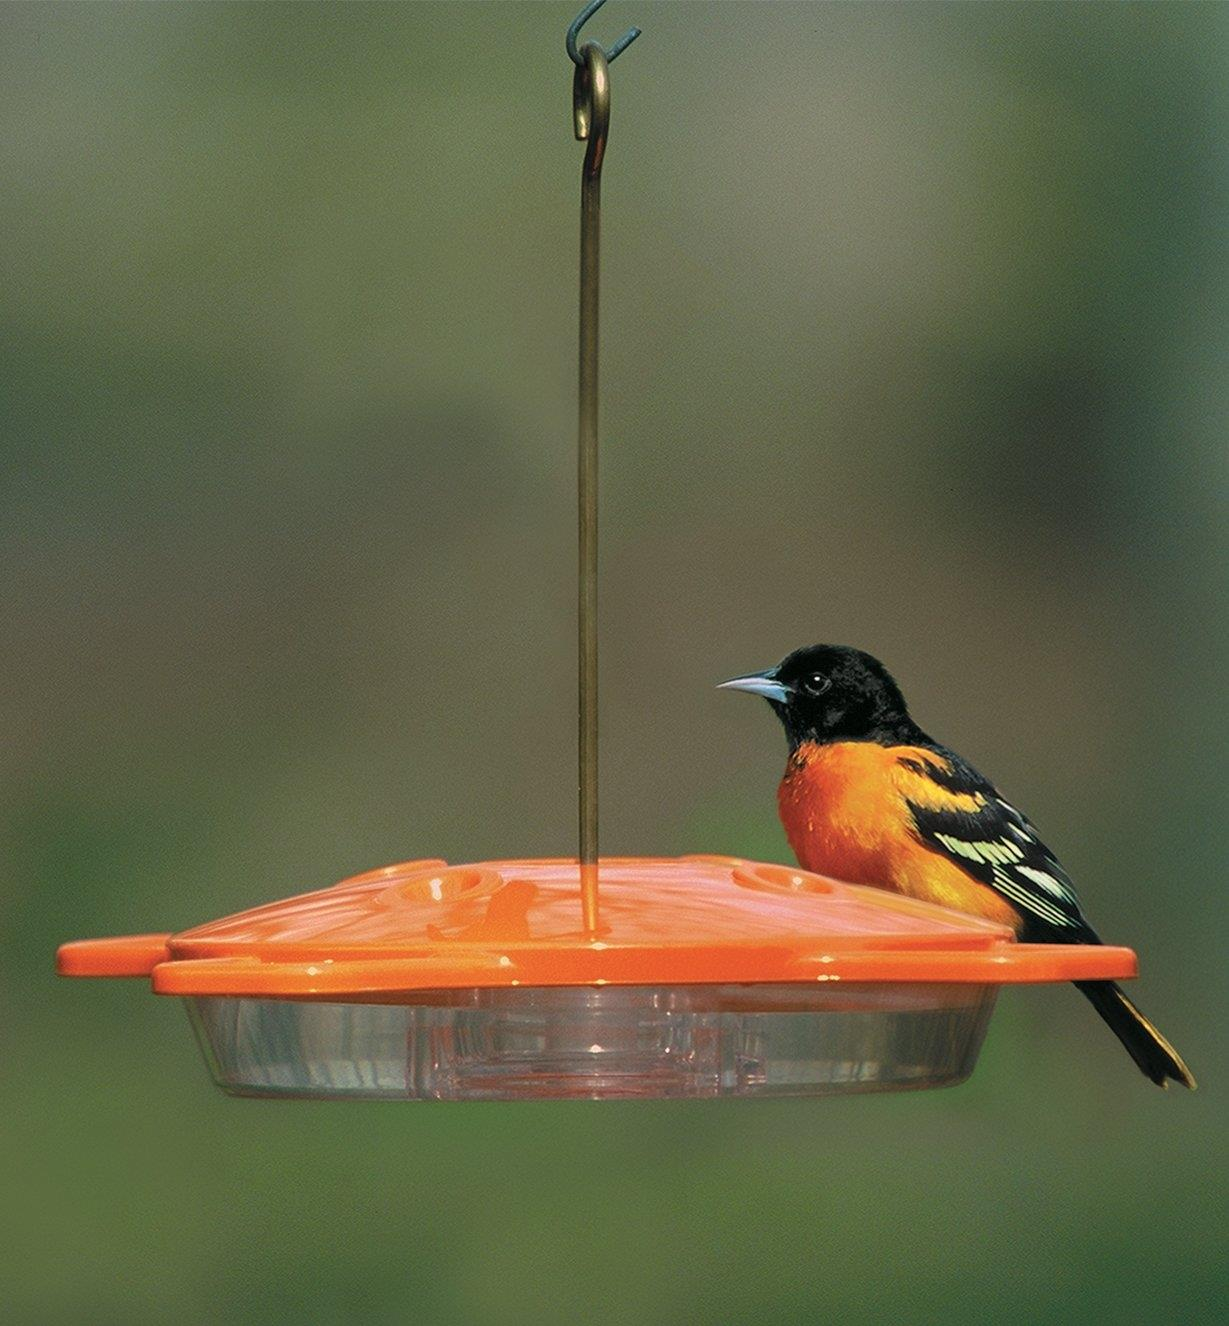 An oriole perches on an Oriole Feeder hanging in a yard